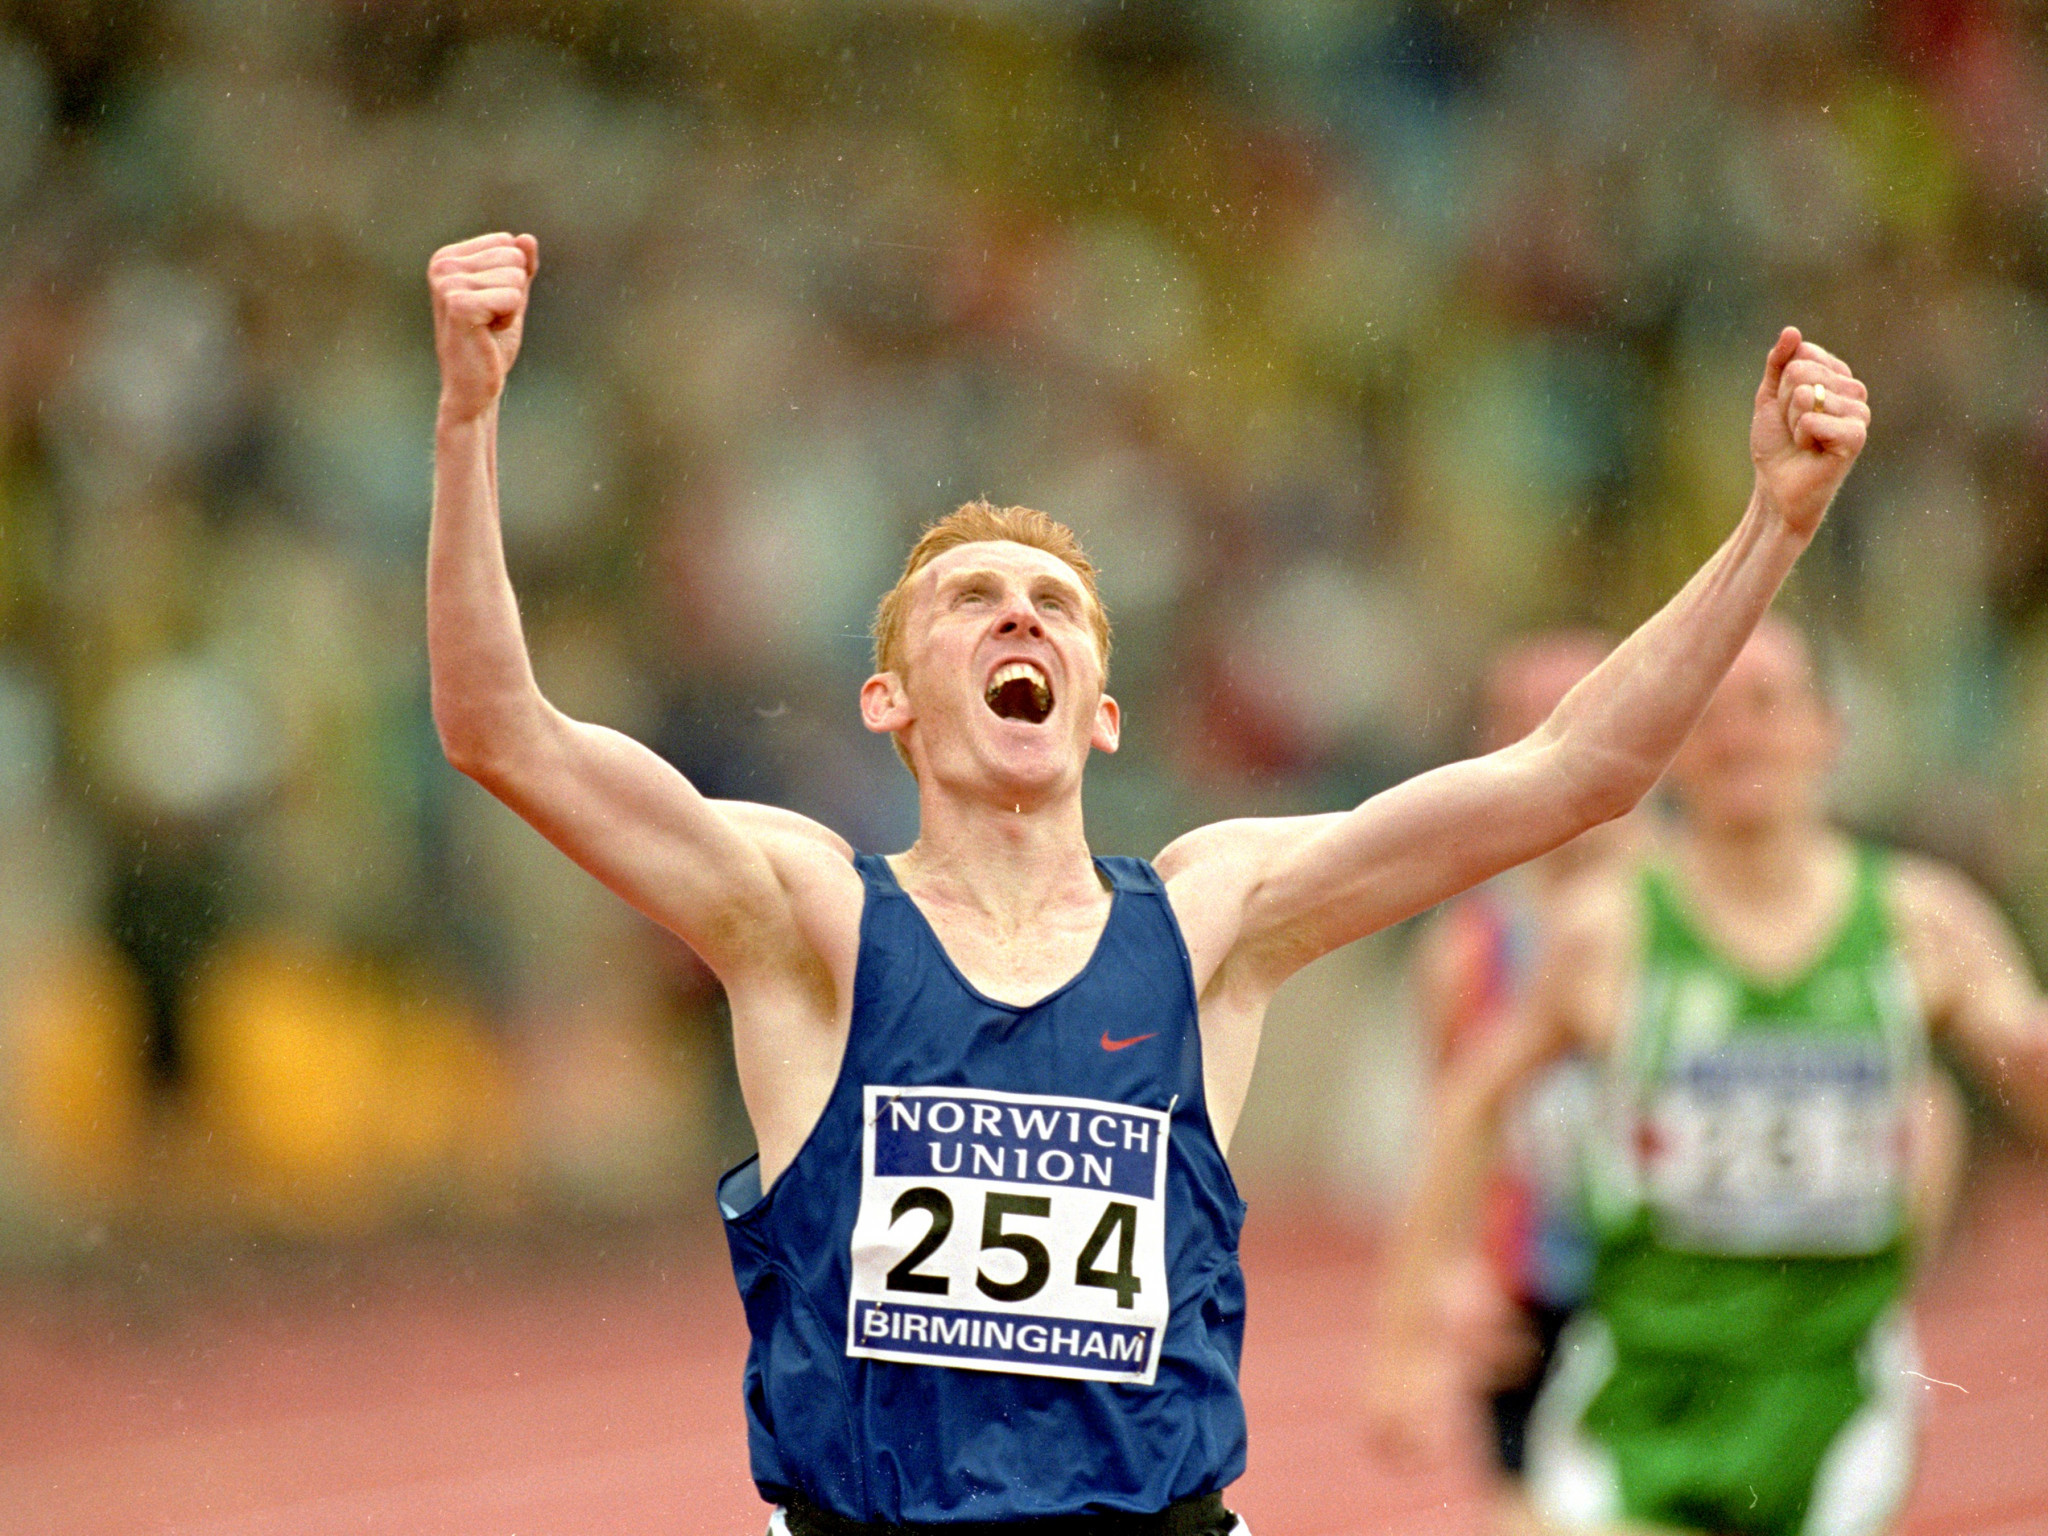 John Mayock enjoyed medal success on the international stage ©Getty Images